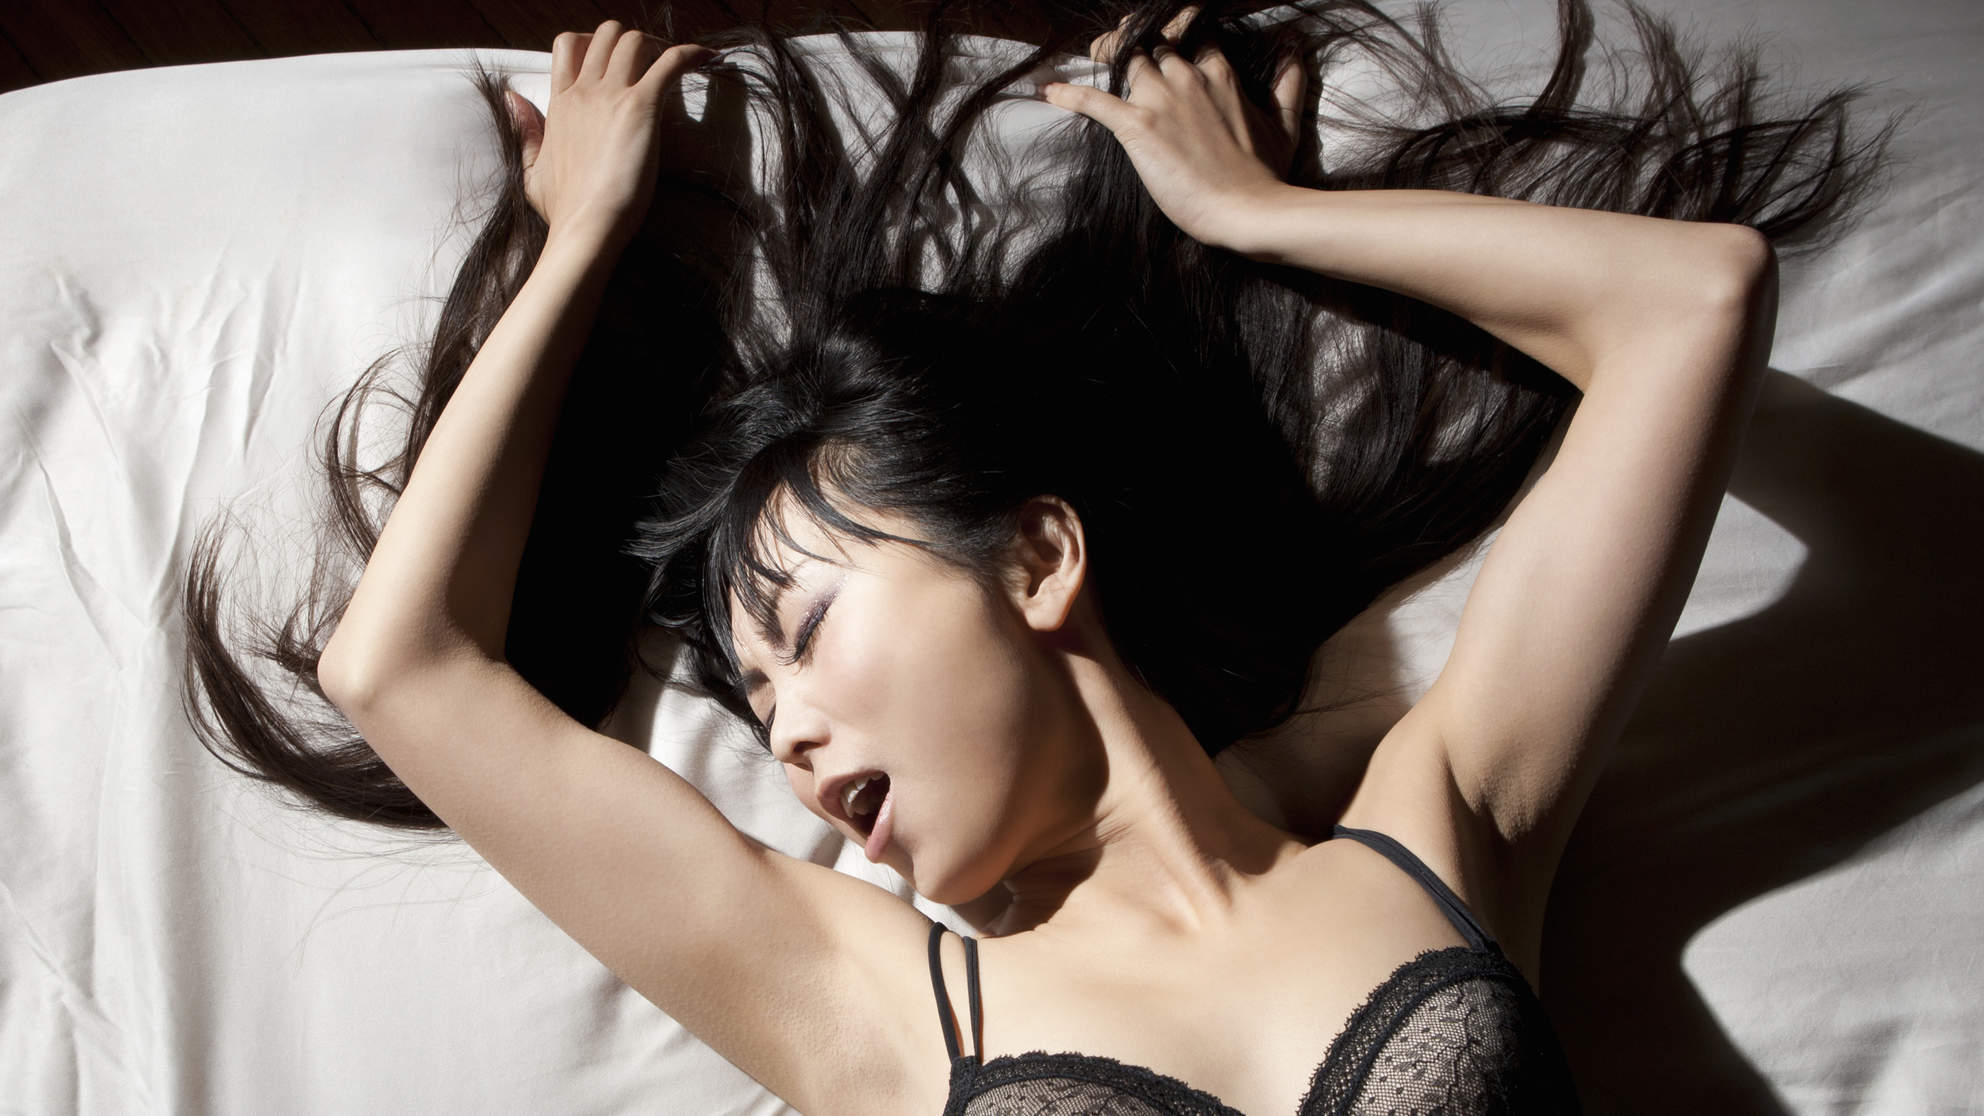 this is how people orgasm around the world - health